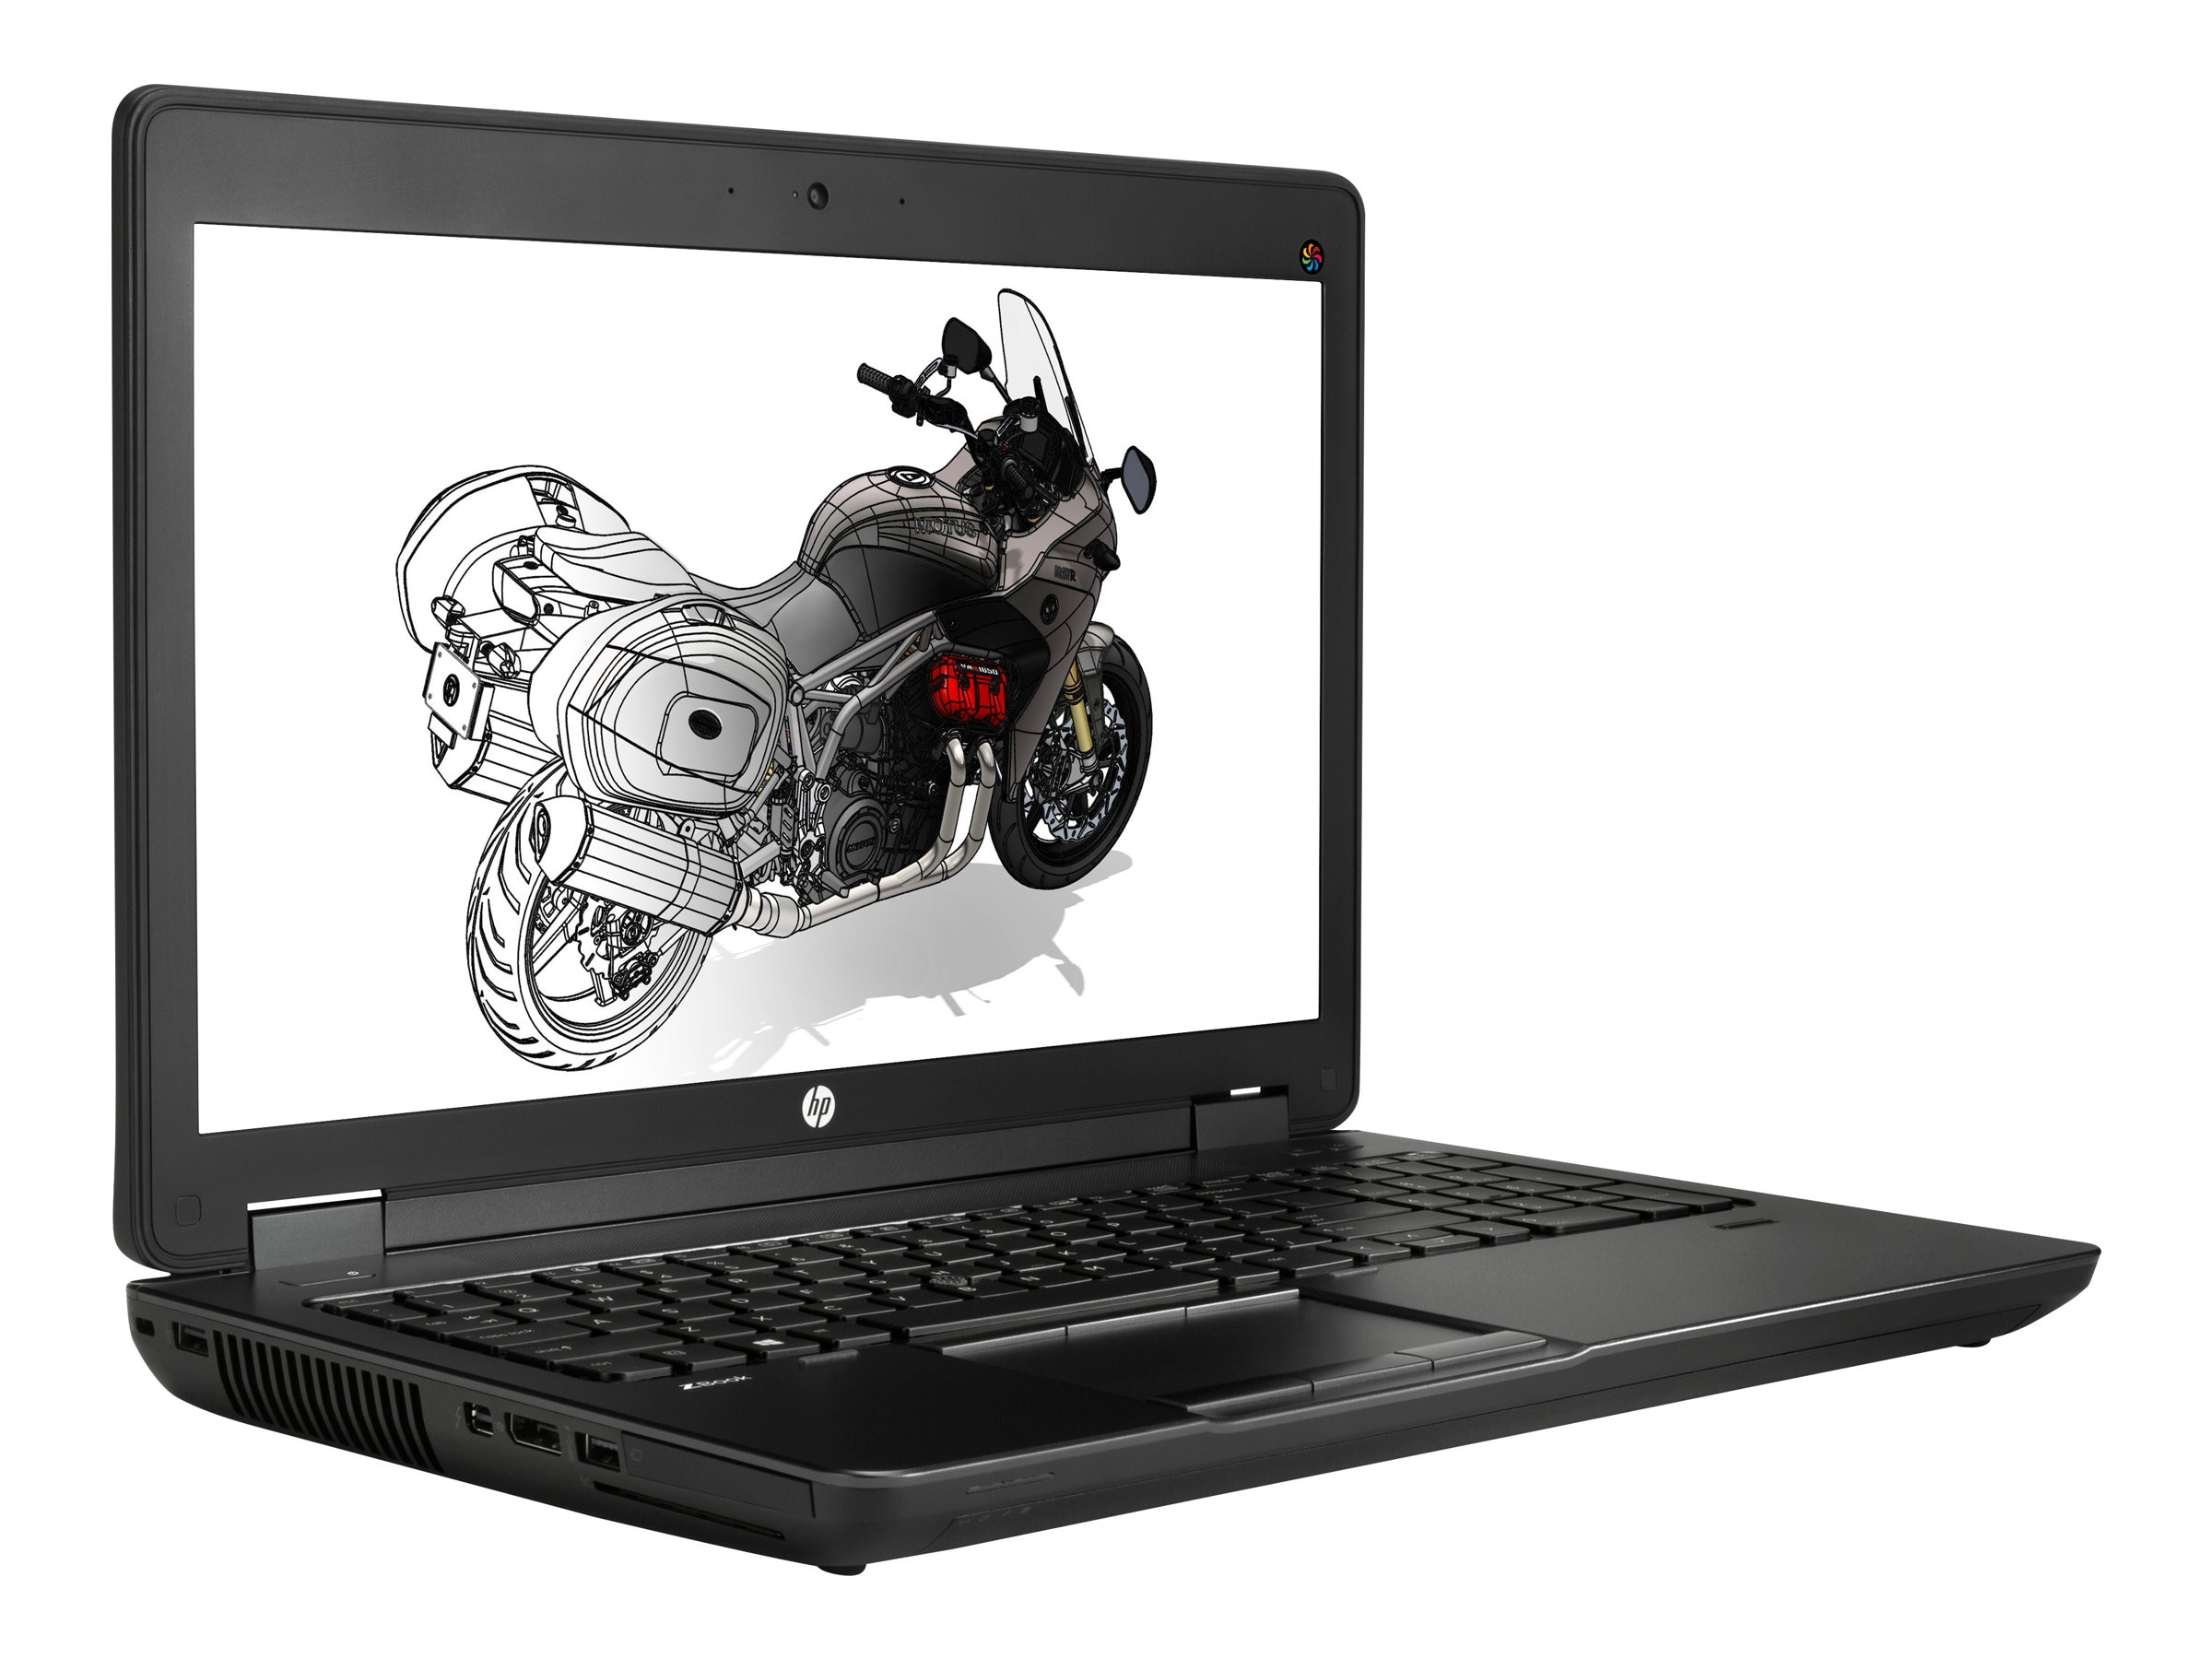 Open Box HP ZBook 15 Core i7-4610M 8GB 256GB SSD DVD+RW BT 15.6 W7P64, N0N37US#ABA, 31117025, Workstations - Mobile